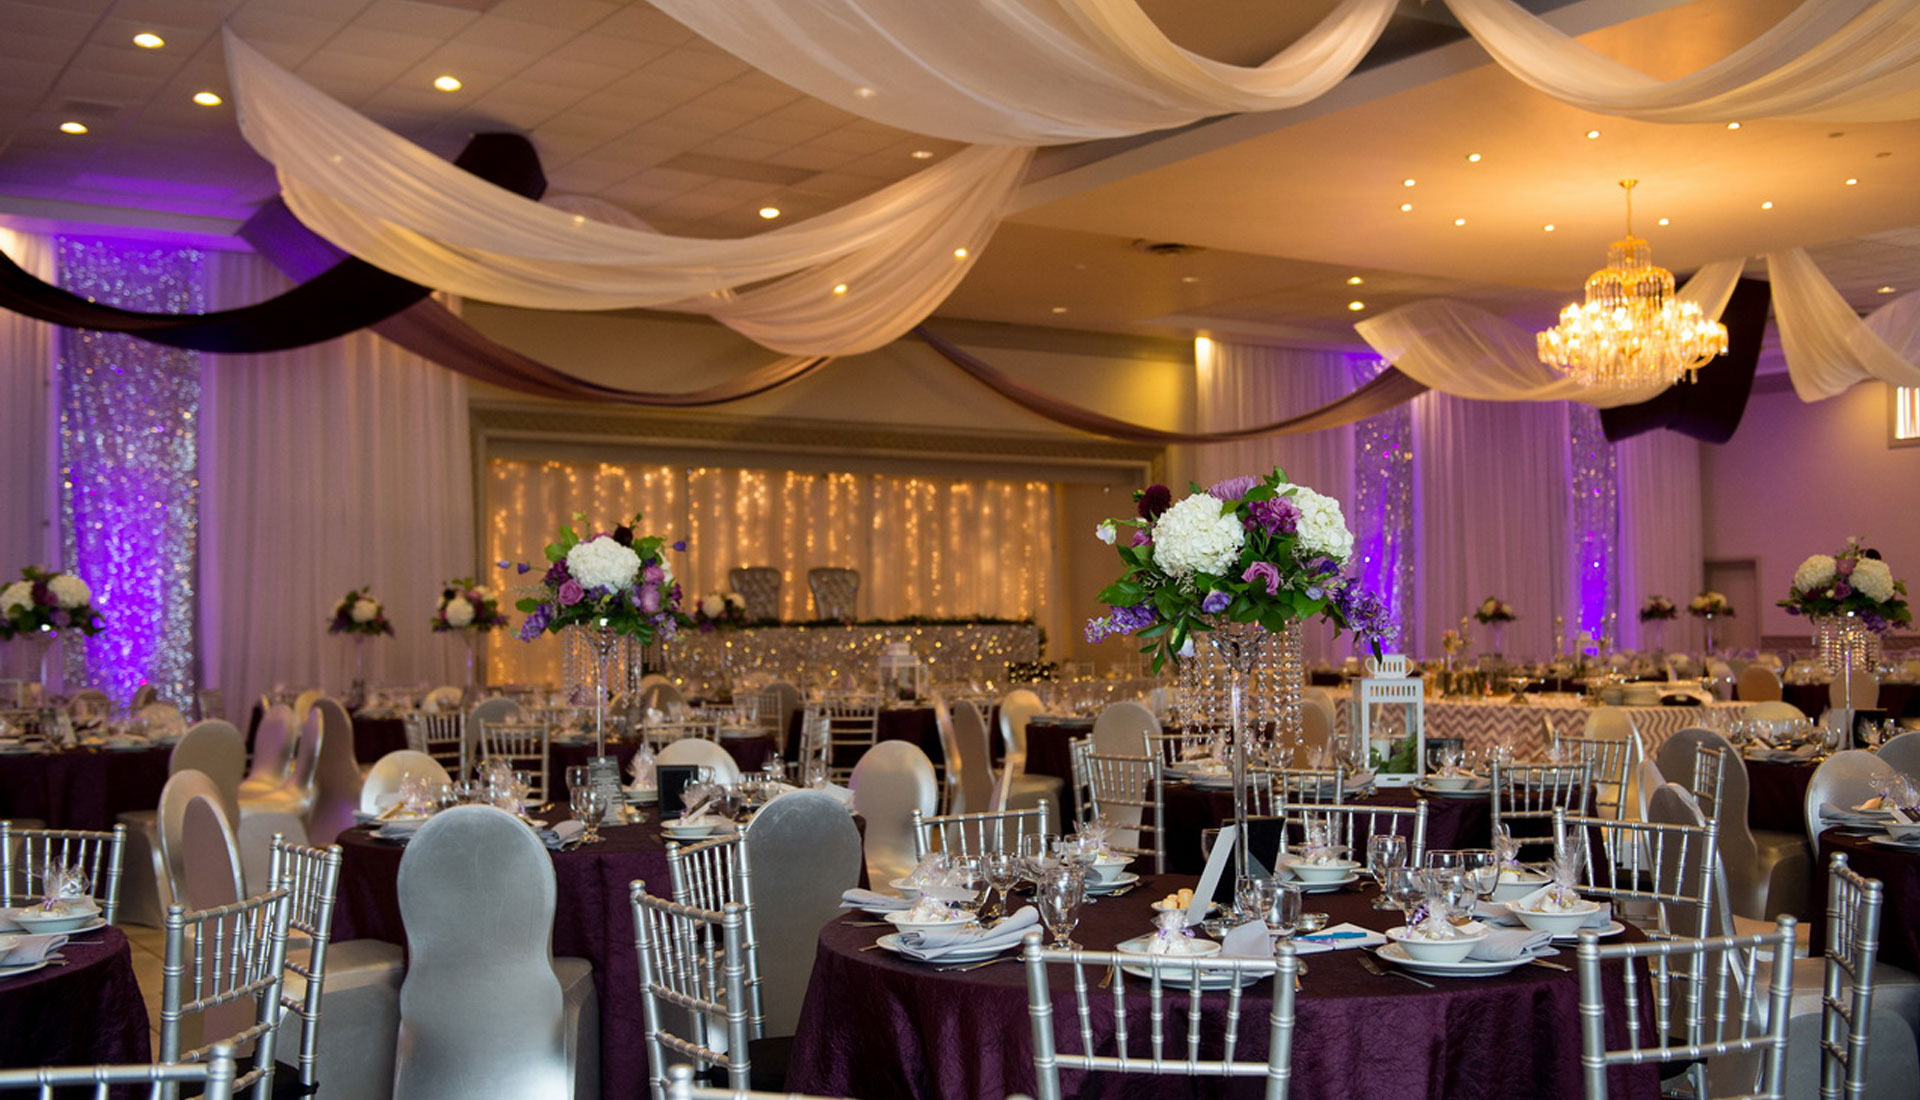 org silver wedding nj purple ideas rent extravagant bhesa decorations an and vase rental decorators black chicago decor pew